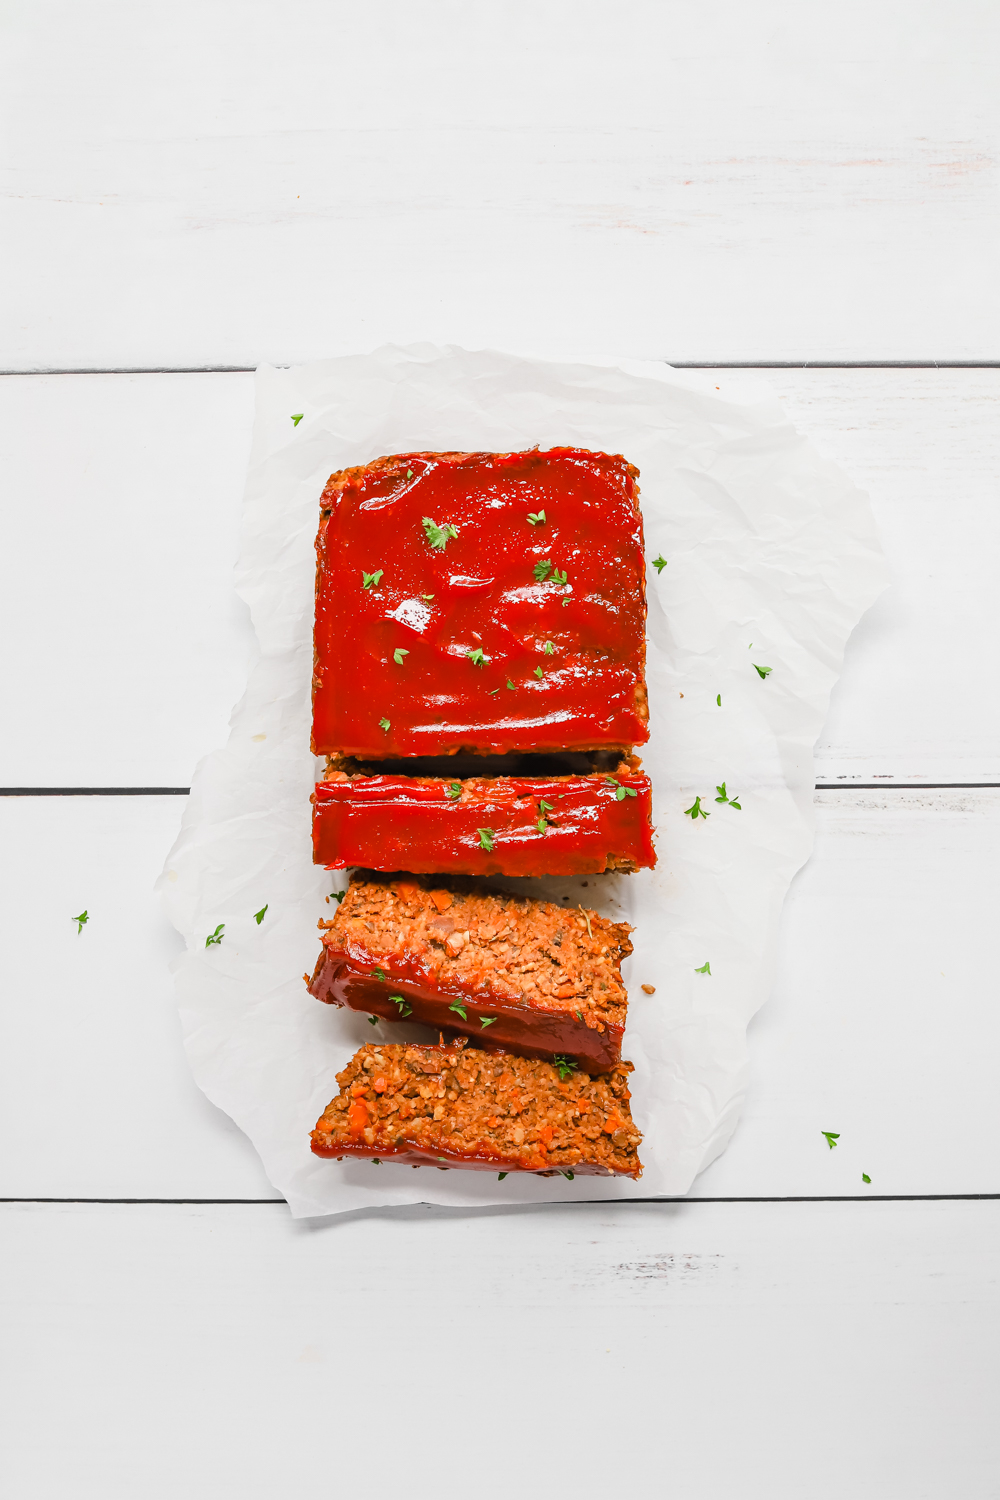 Vegan lentil meatloaf with ketchup glazed sliced into pieces and sitting on white parchment paper.